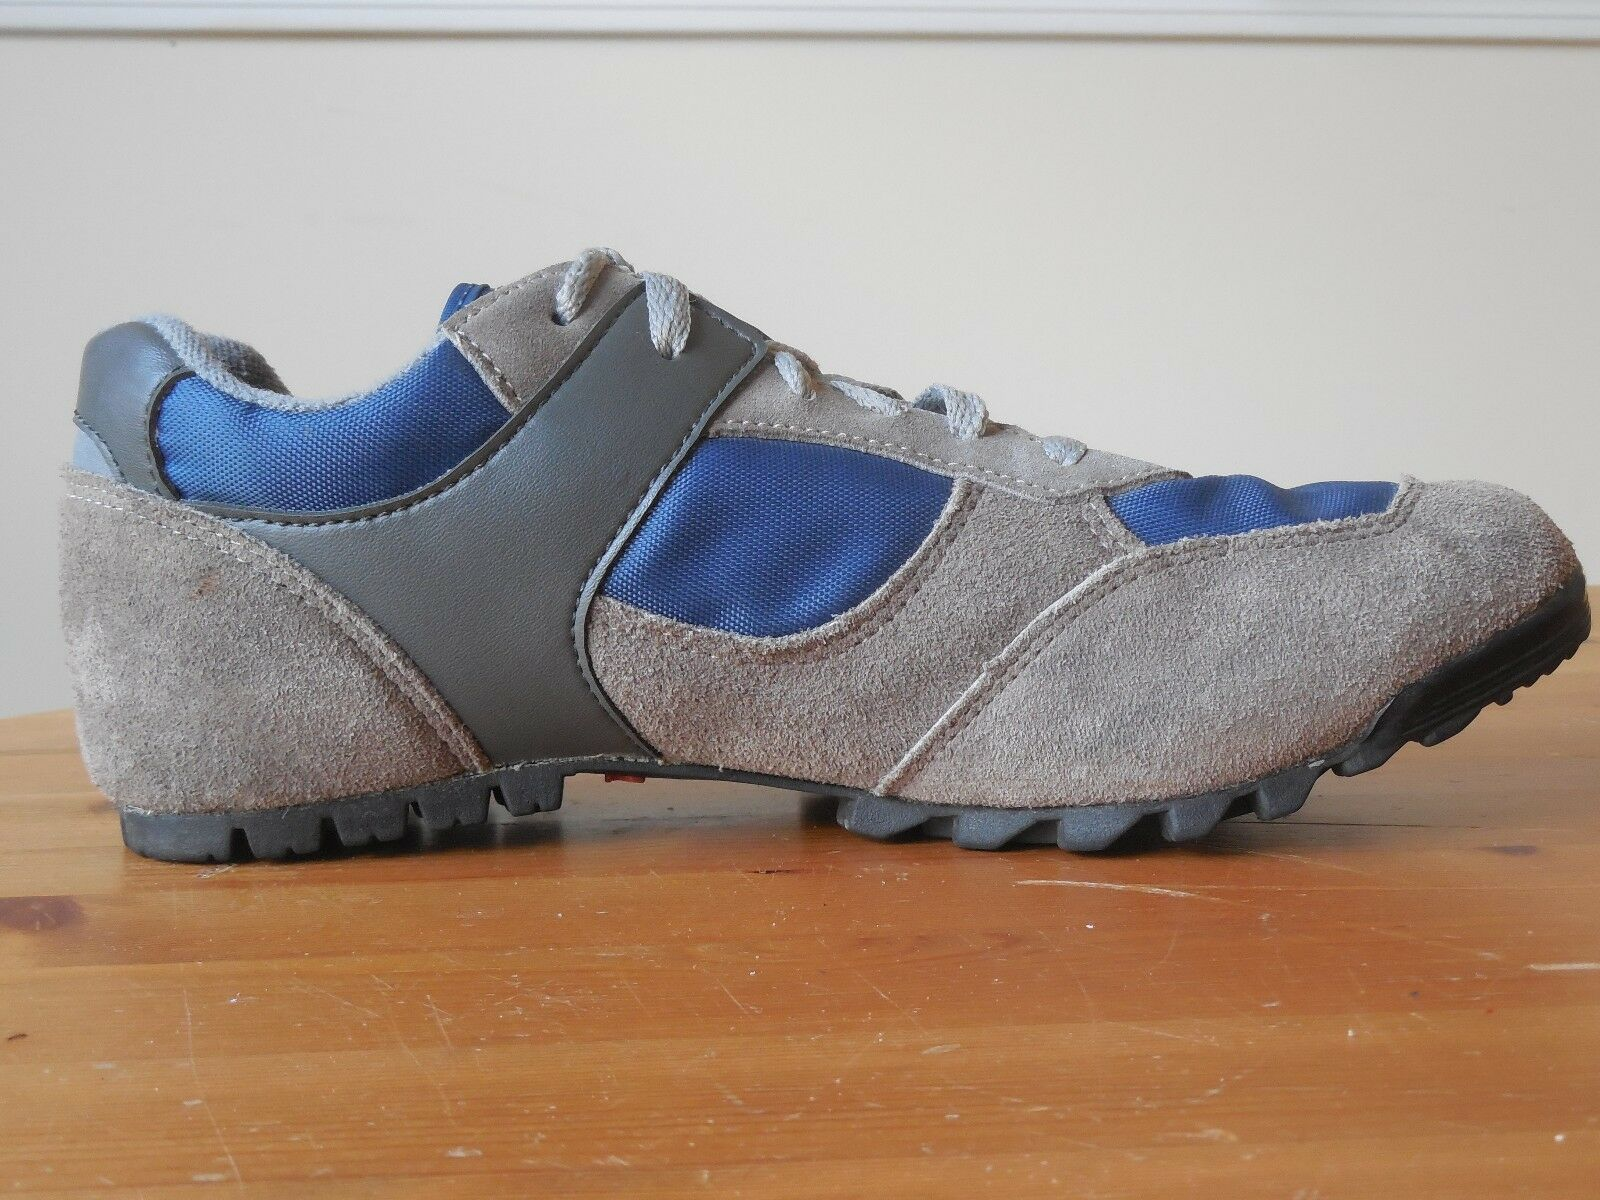 Specialized Casual Lace Up Riding Cycling Schuhes Suede and Nylon Größe 40